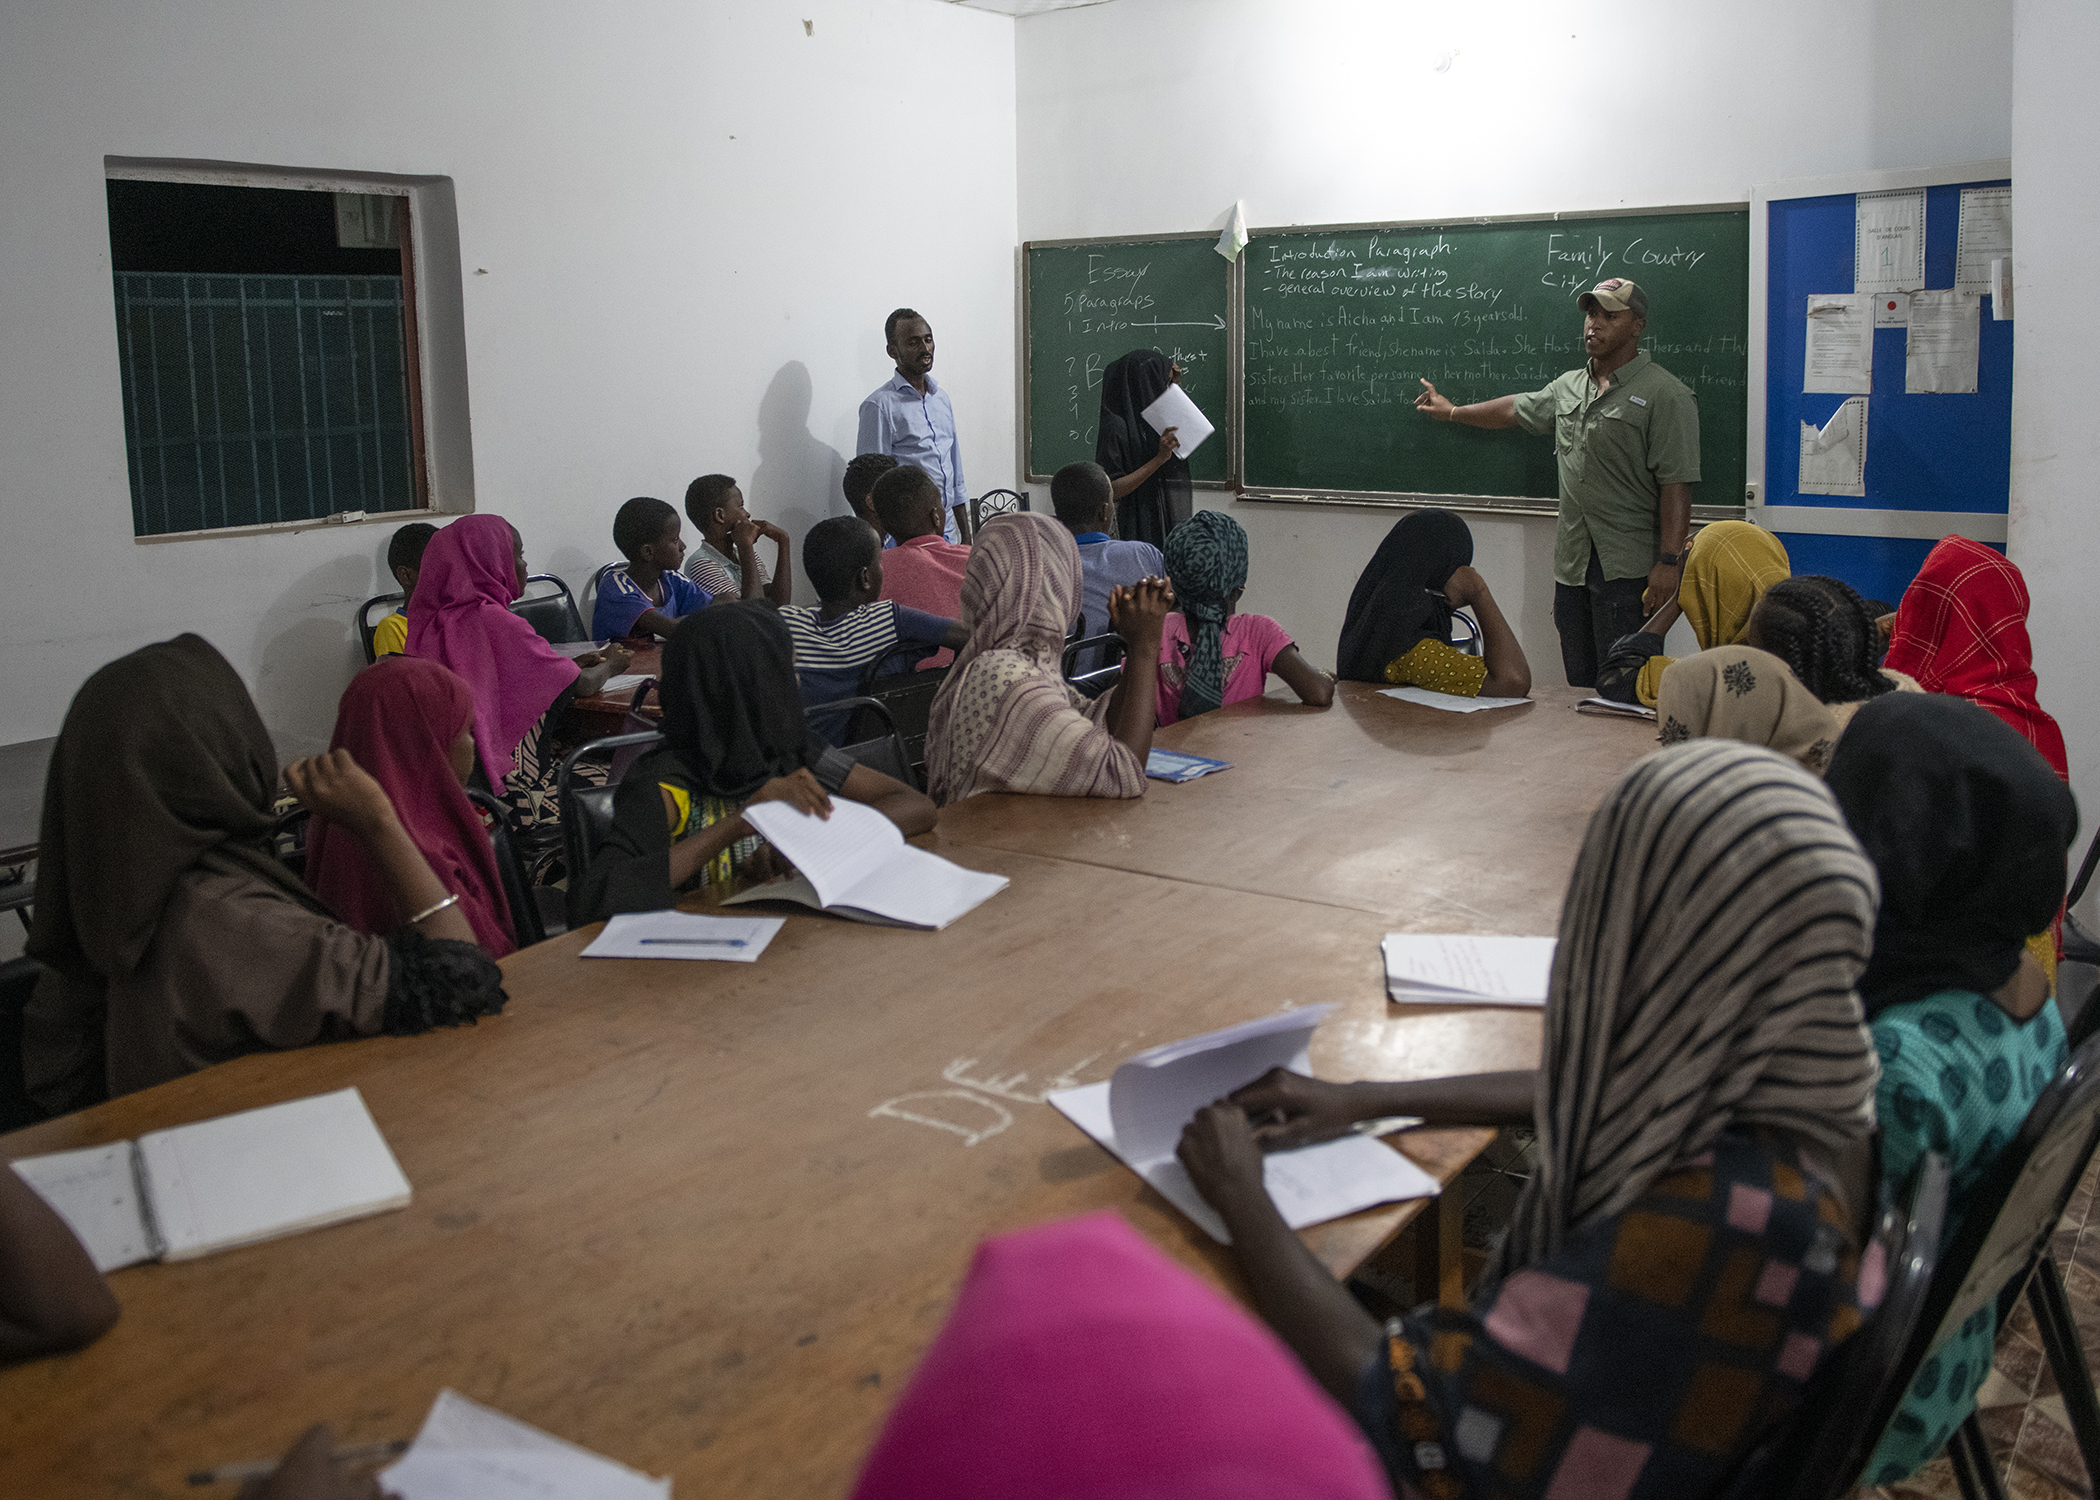 U.S. Army Staff Sgt. Willie Linson, the senior medic for 404th Civil Affairs Battalion, leads an English Discussion Group in Tadjourah, Djibouti, Feb. 12, 2019. More than 90 Djiboutian youth and adults attended the group where students develop practical linguistic and rhetorical skills through conversation with English-speaking U.S. service members. (U.S. Air Force photo by Tech. Sgt. Shawn Nickel)